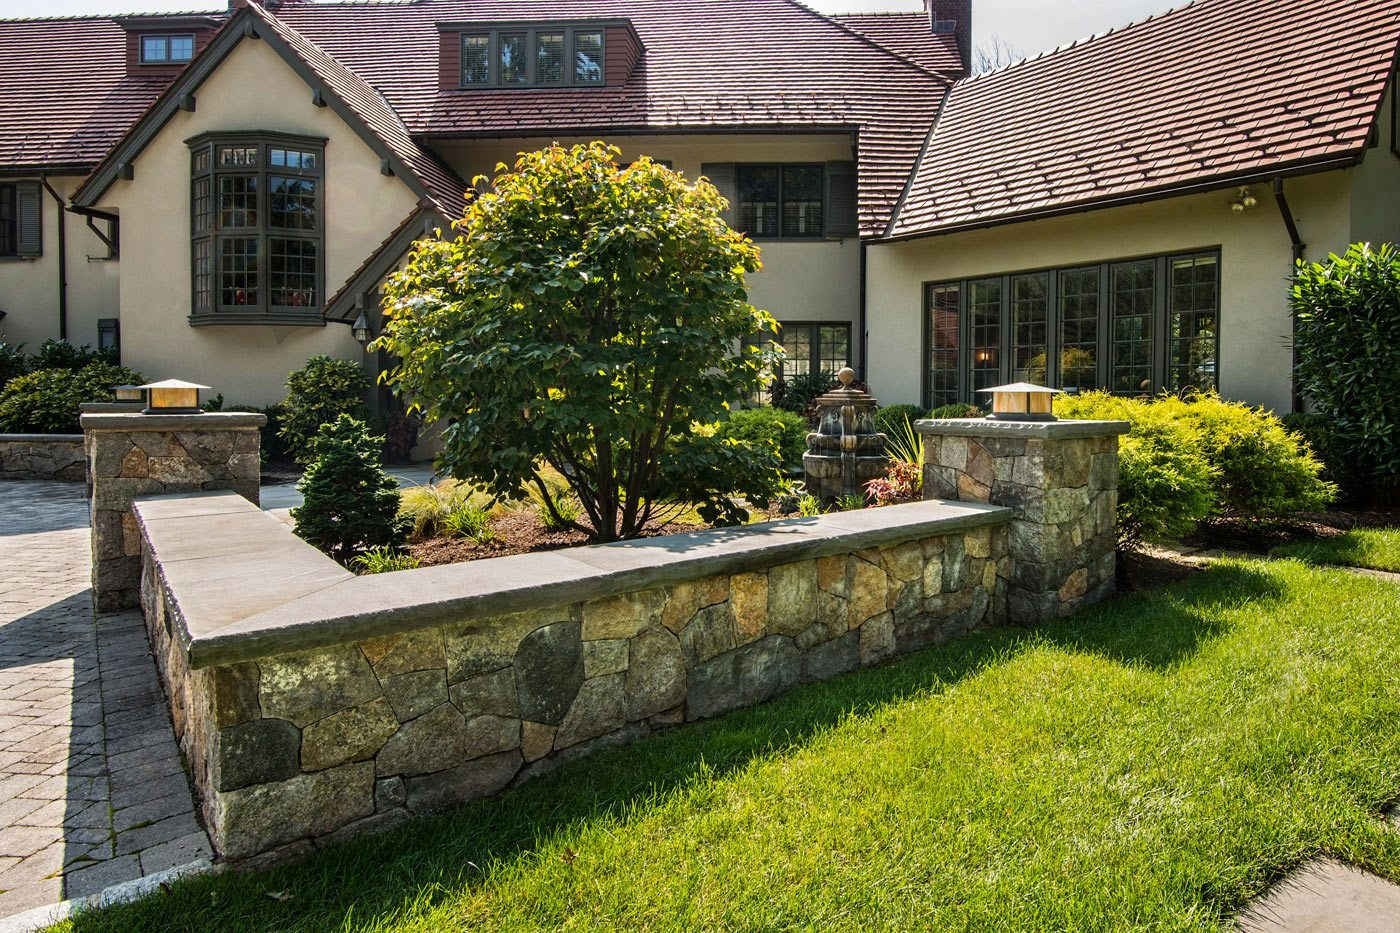 Landscaping In Short Hills NJ By Cording Landscape Design - Cording Landscape Design